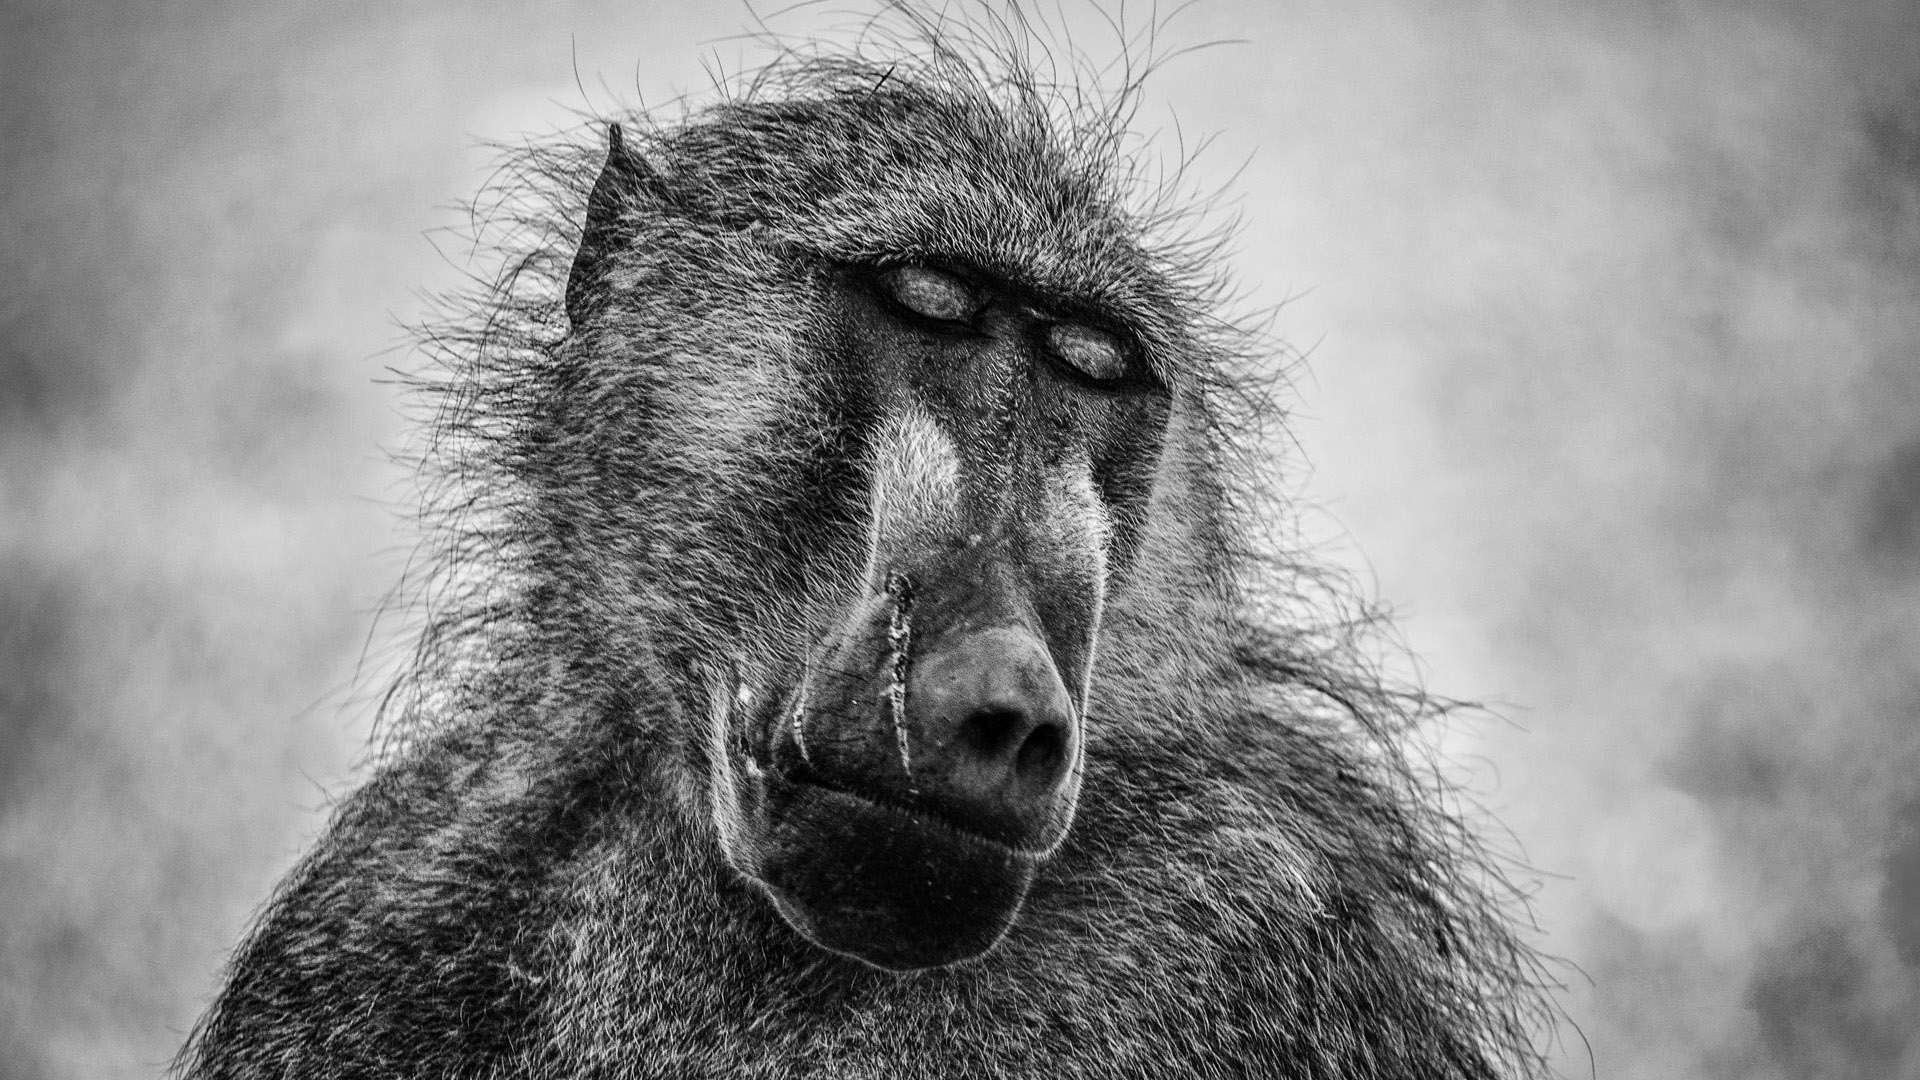 Pensive baboon by Shannon Wild